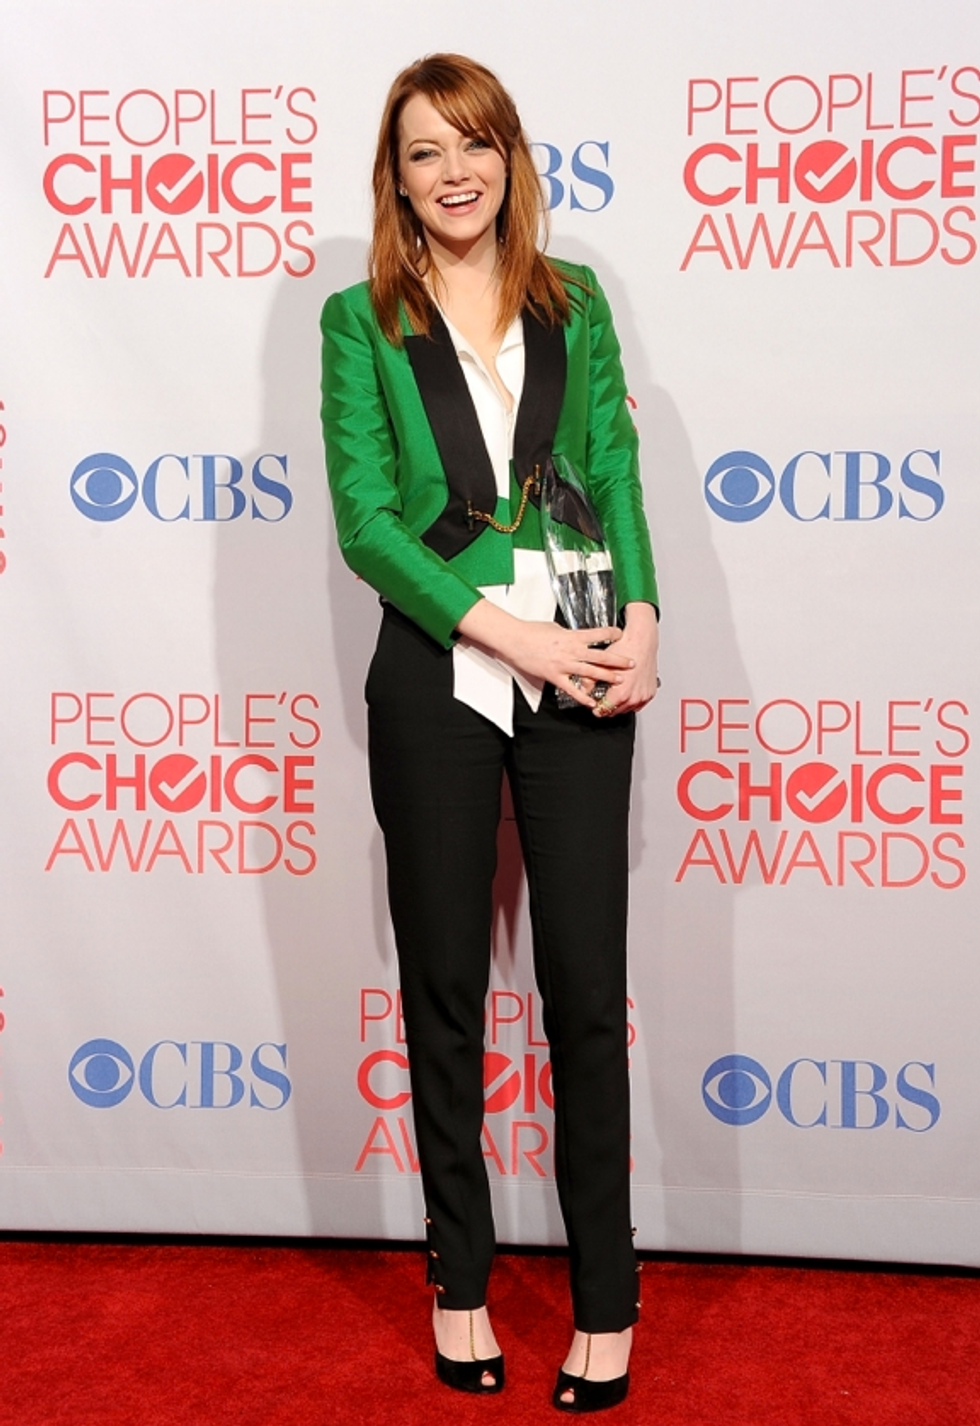 People's Choice Awards Fashion Rights and Wrongs